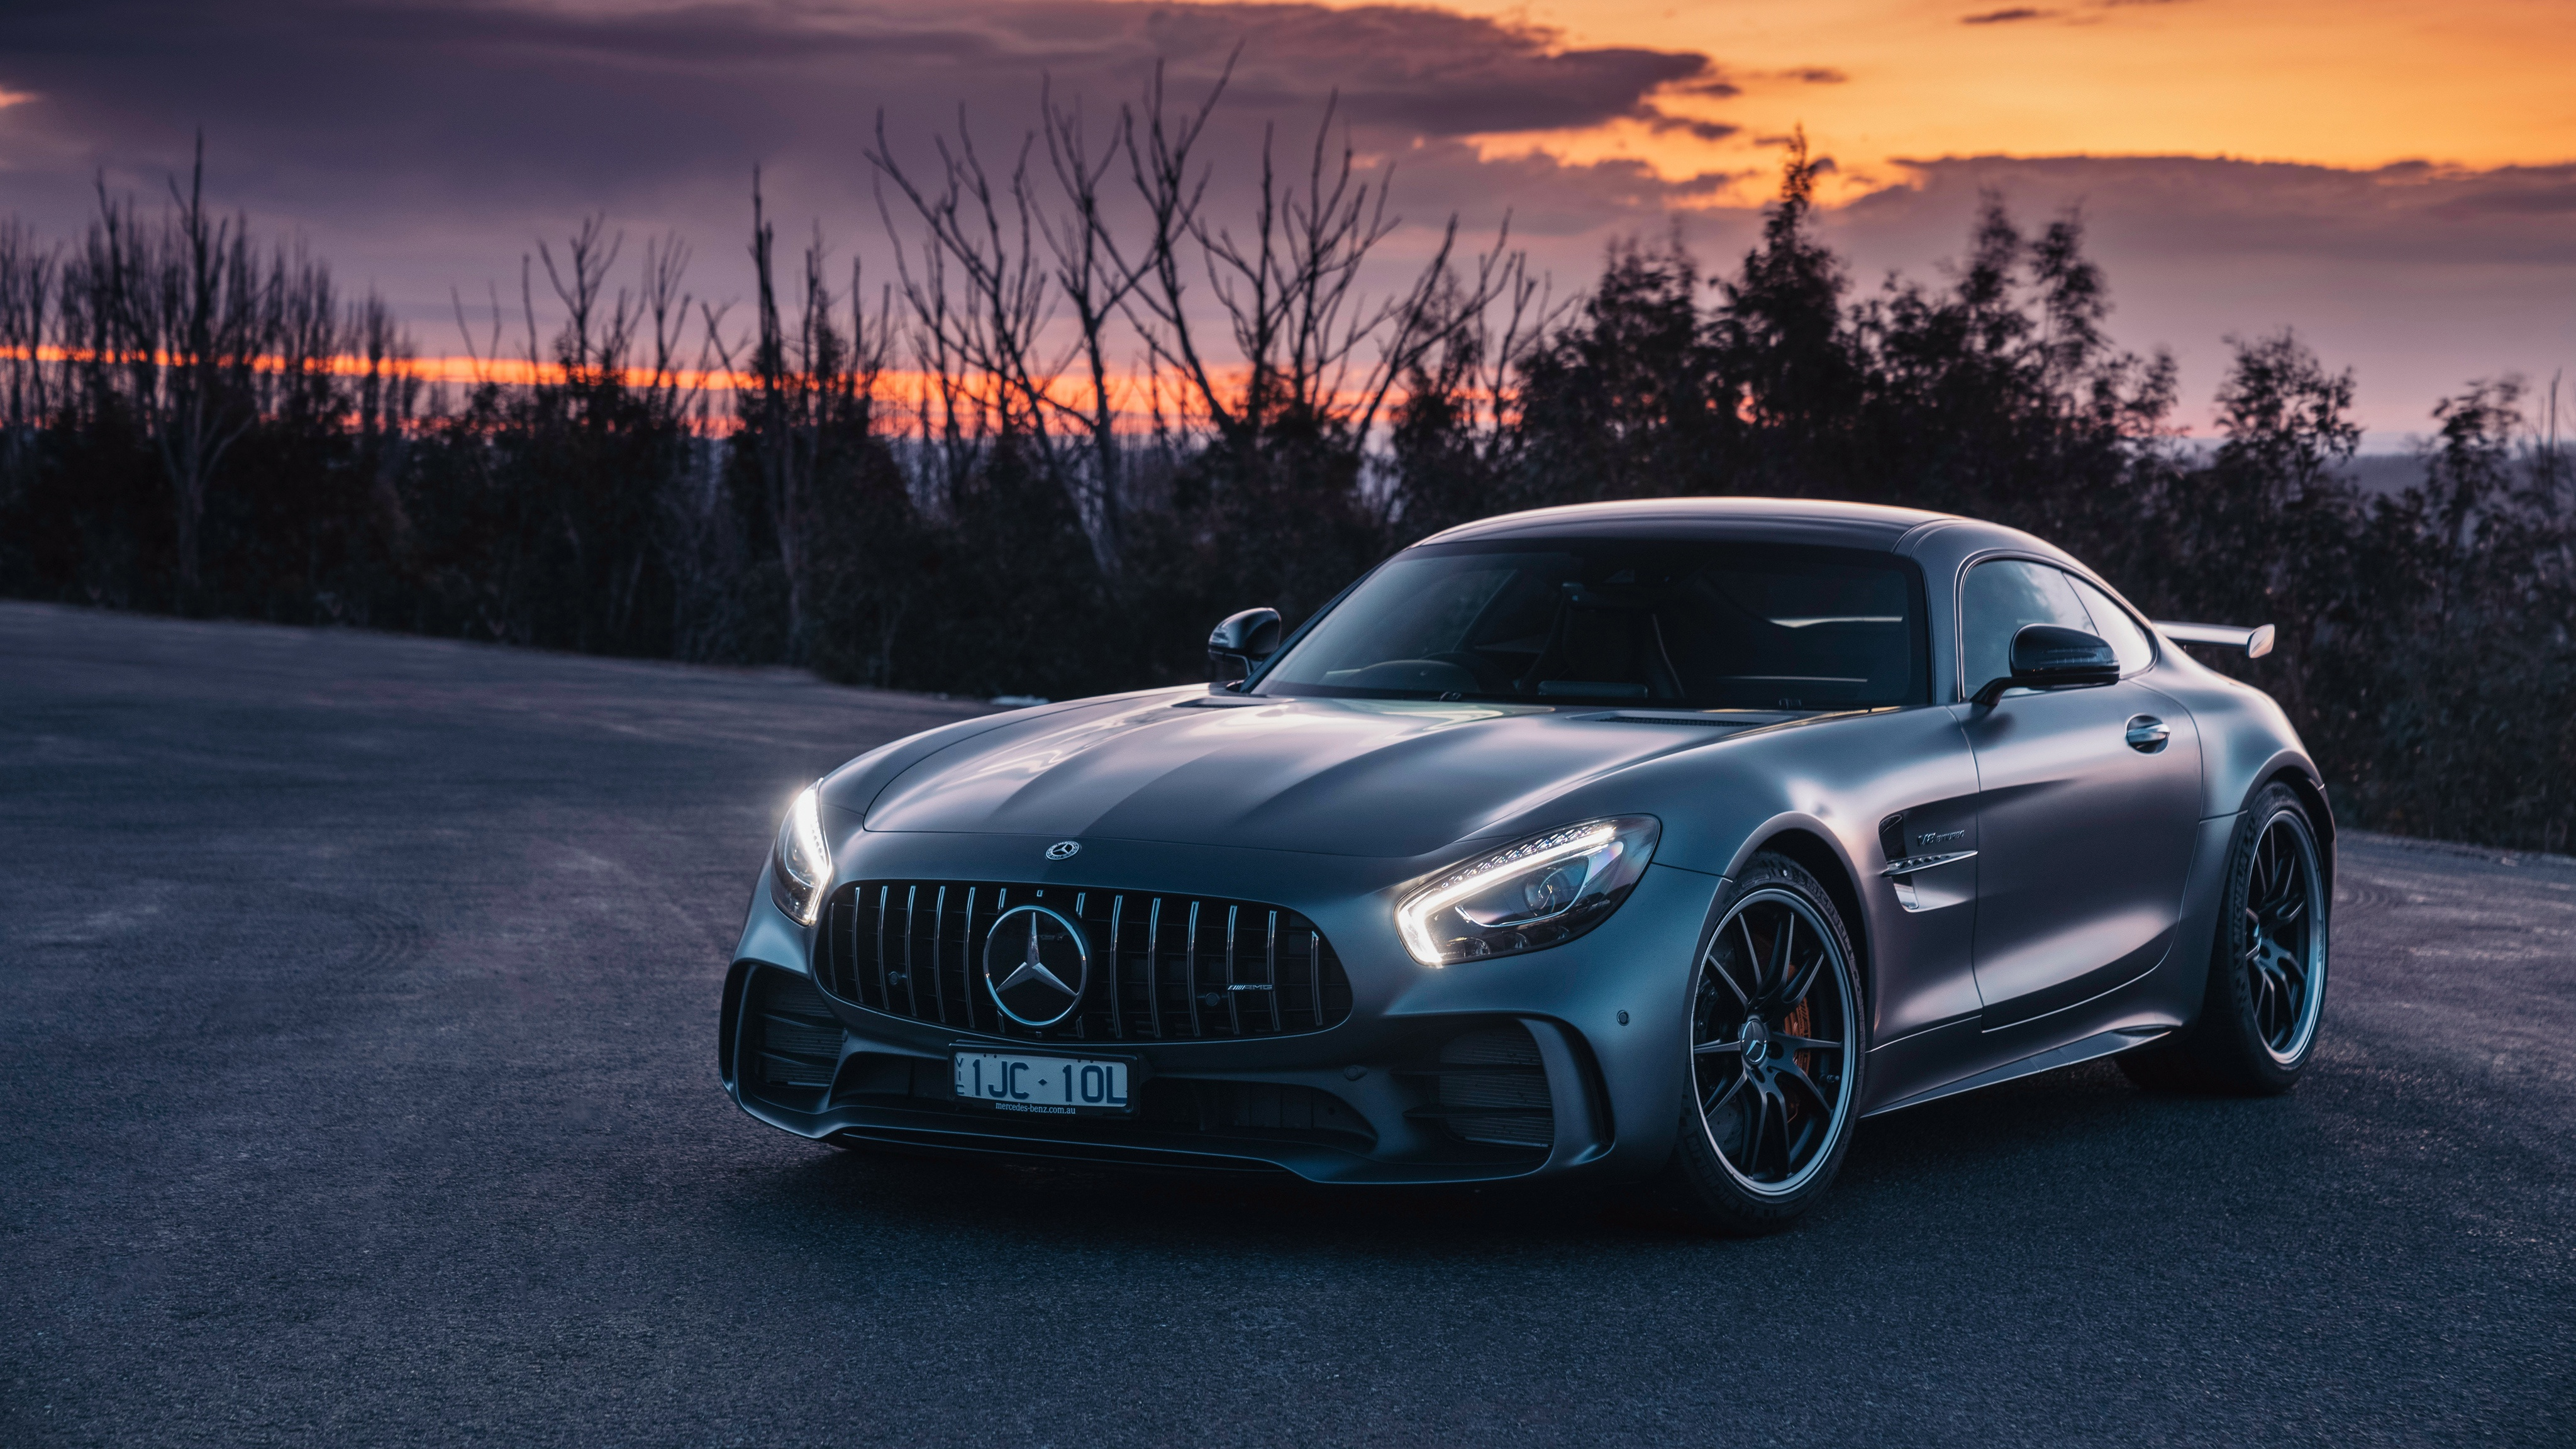 Amg Gtr Mercedes Benz 2018 Hd Cars 4k Wallpapers Images HD Wallpapers Download free images and photos [musssic.tk]